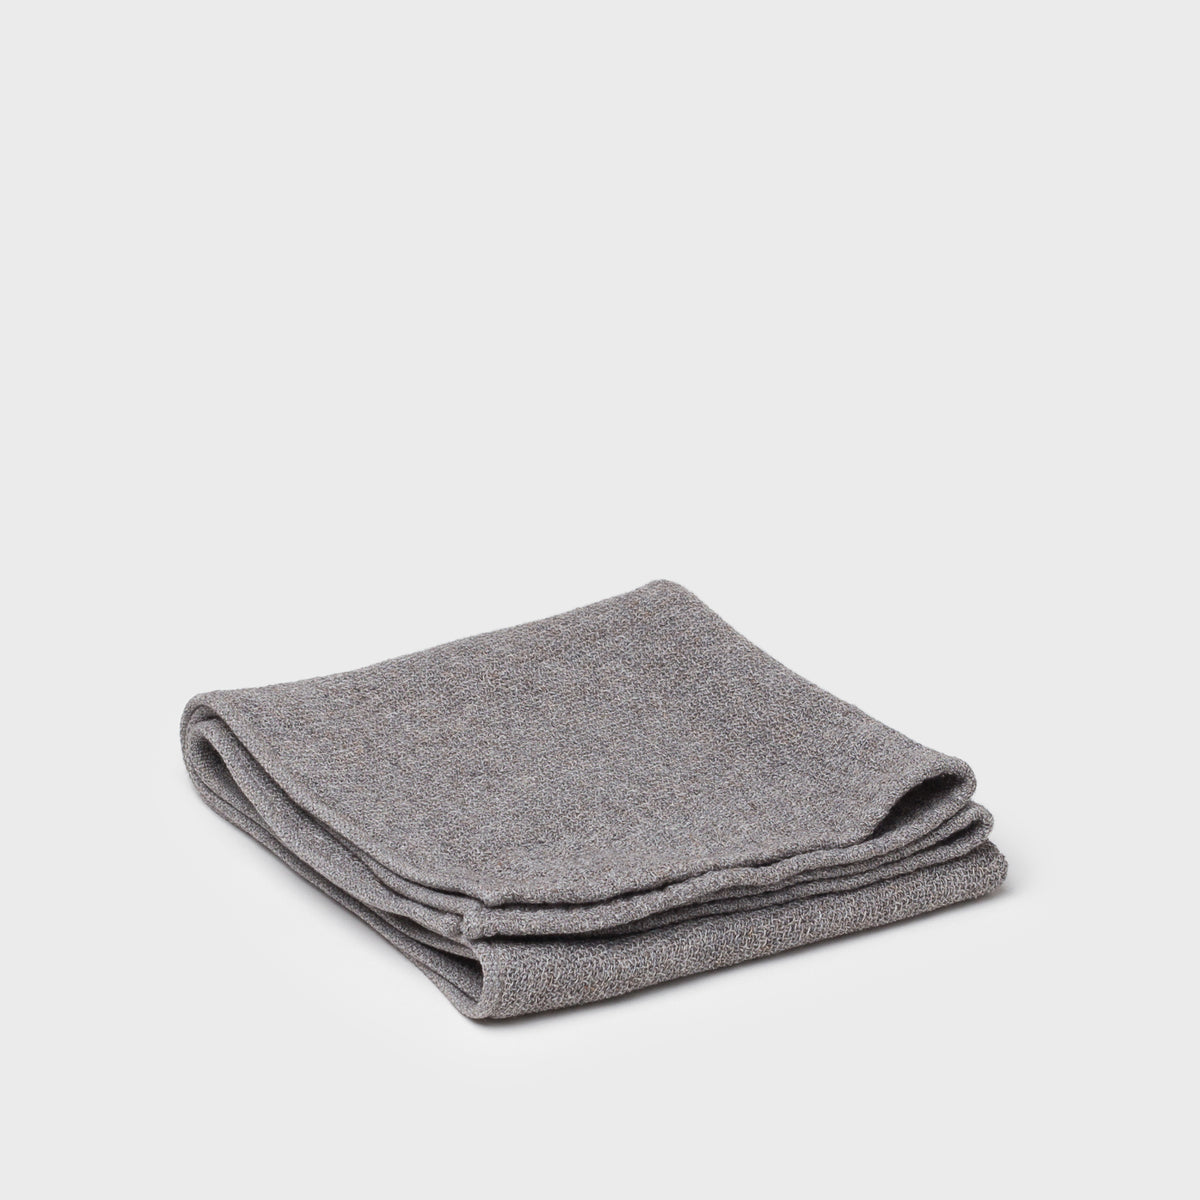 Load image into Gallery viewer, Lana Towel in Grey - Bath – Shoppe Amber Interiors